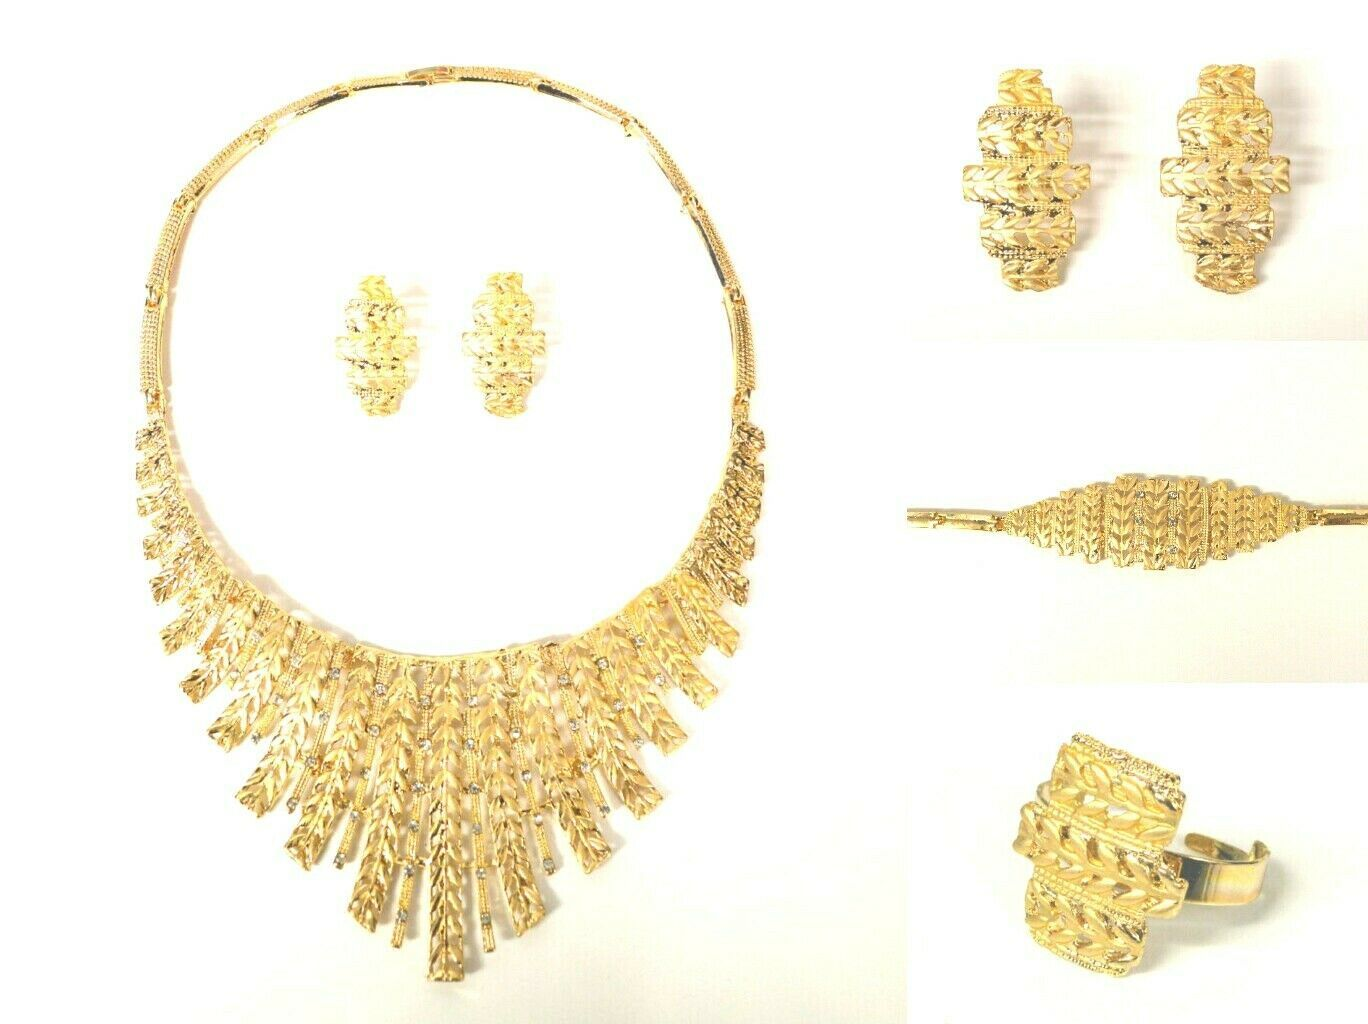 Primary image for STATEMENT GLAM BLING CURVED BIB VINTAGE FOUR PIECE JEWELLERY NECKLACE SET GOLD